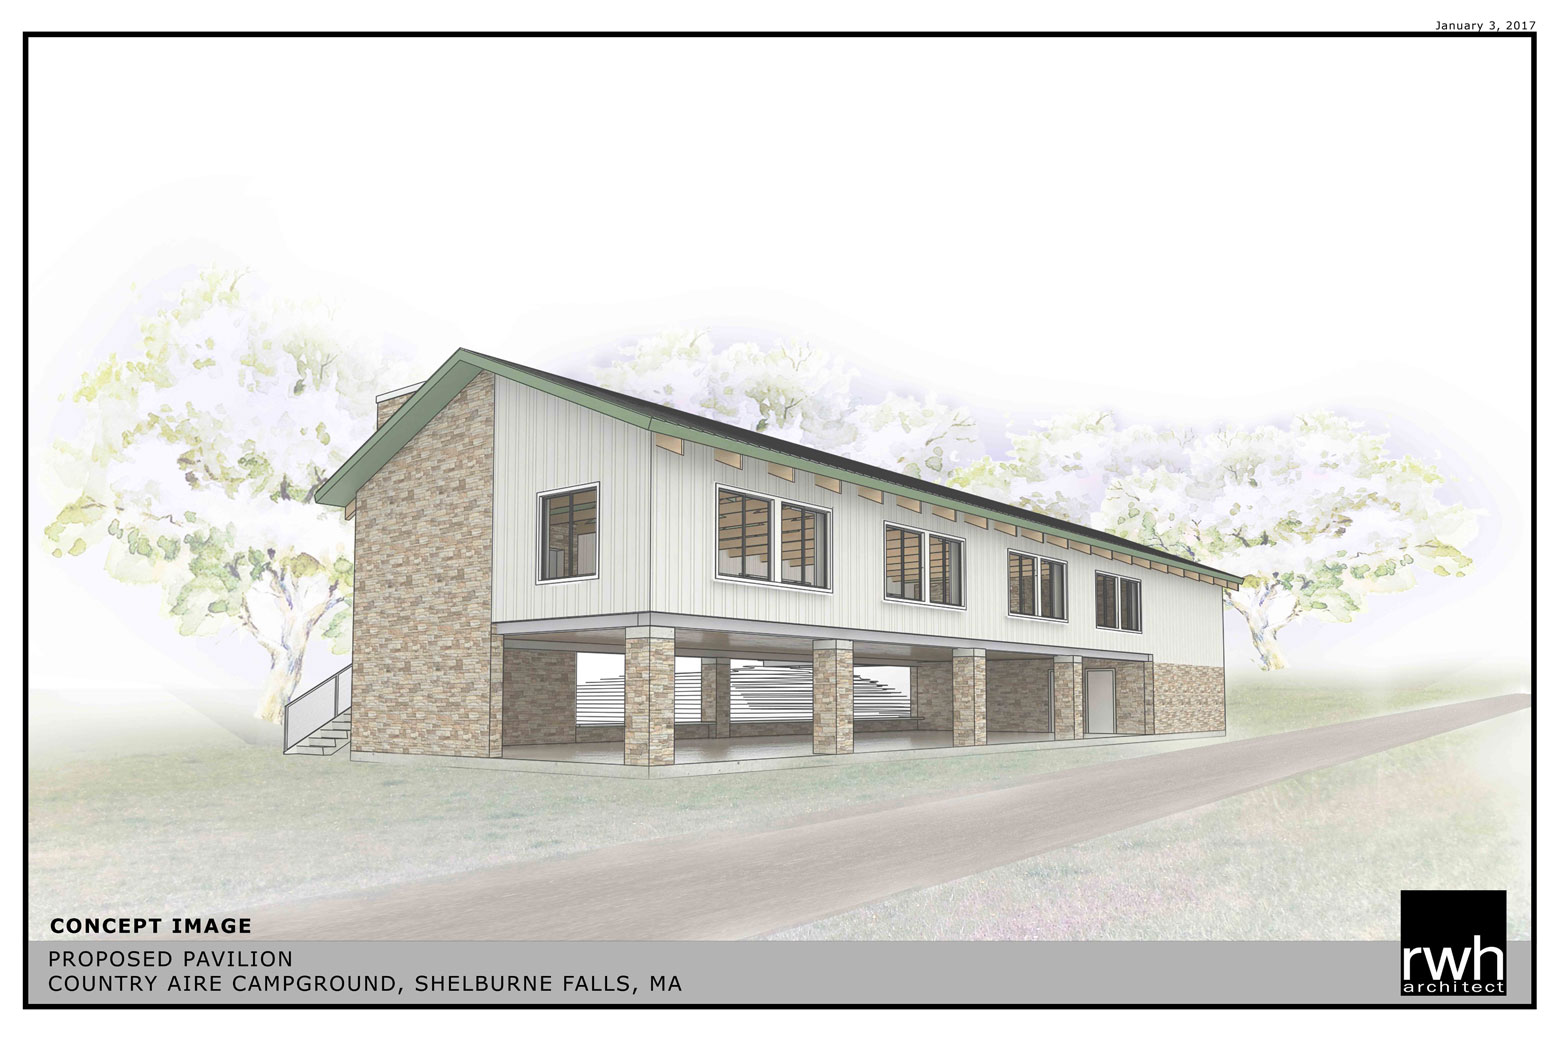 Country Aire Campground Pavilion_Shelburne Falls, MA_ RWH Architect_Salem NH_.jpg